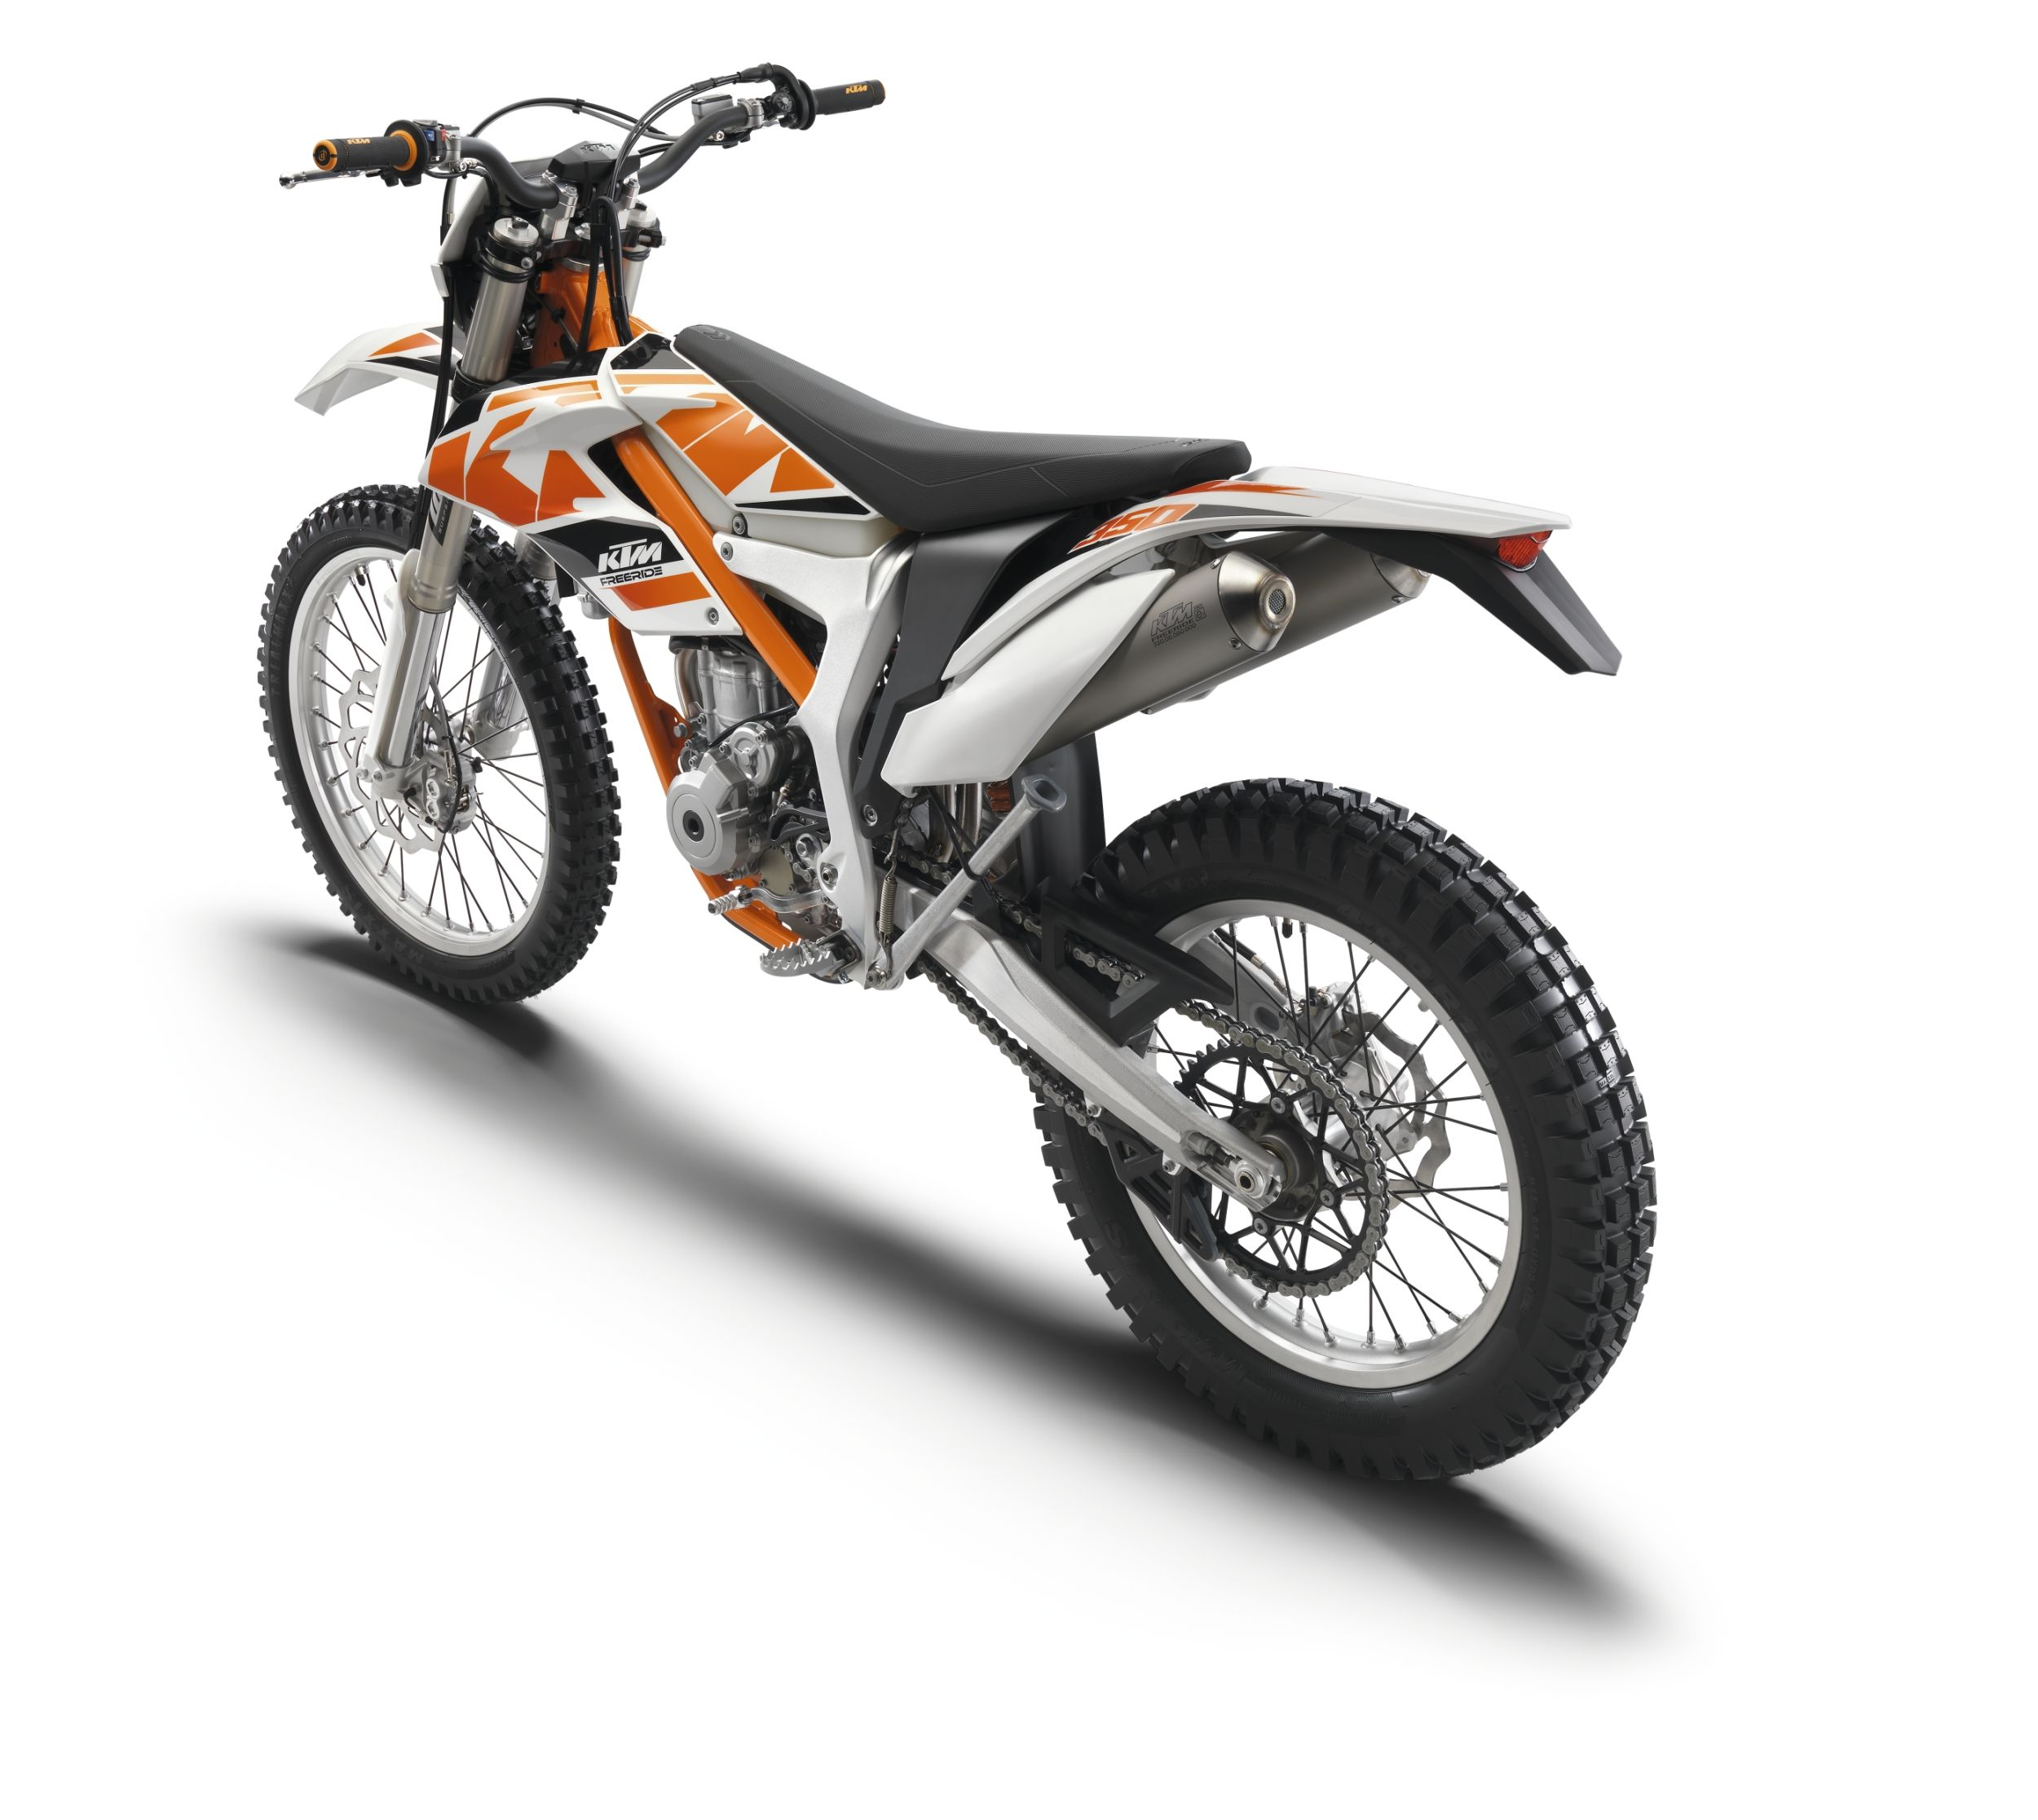 Ktm Freeride Vs Exc